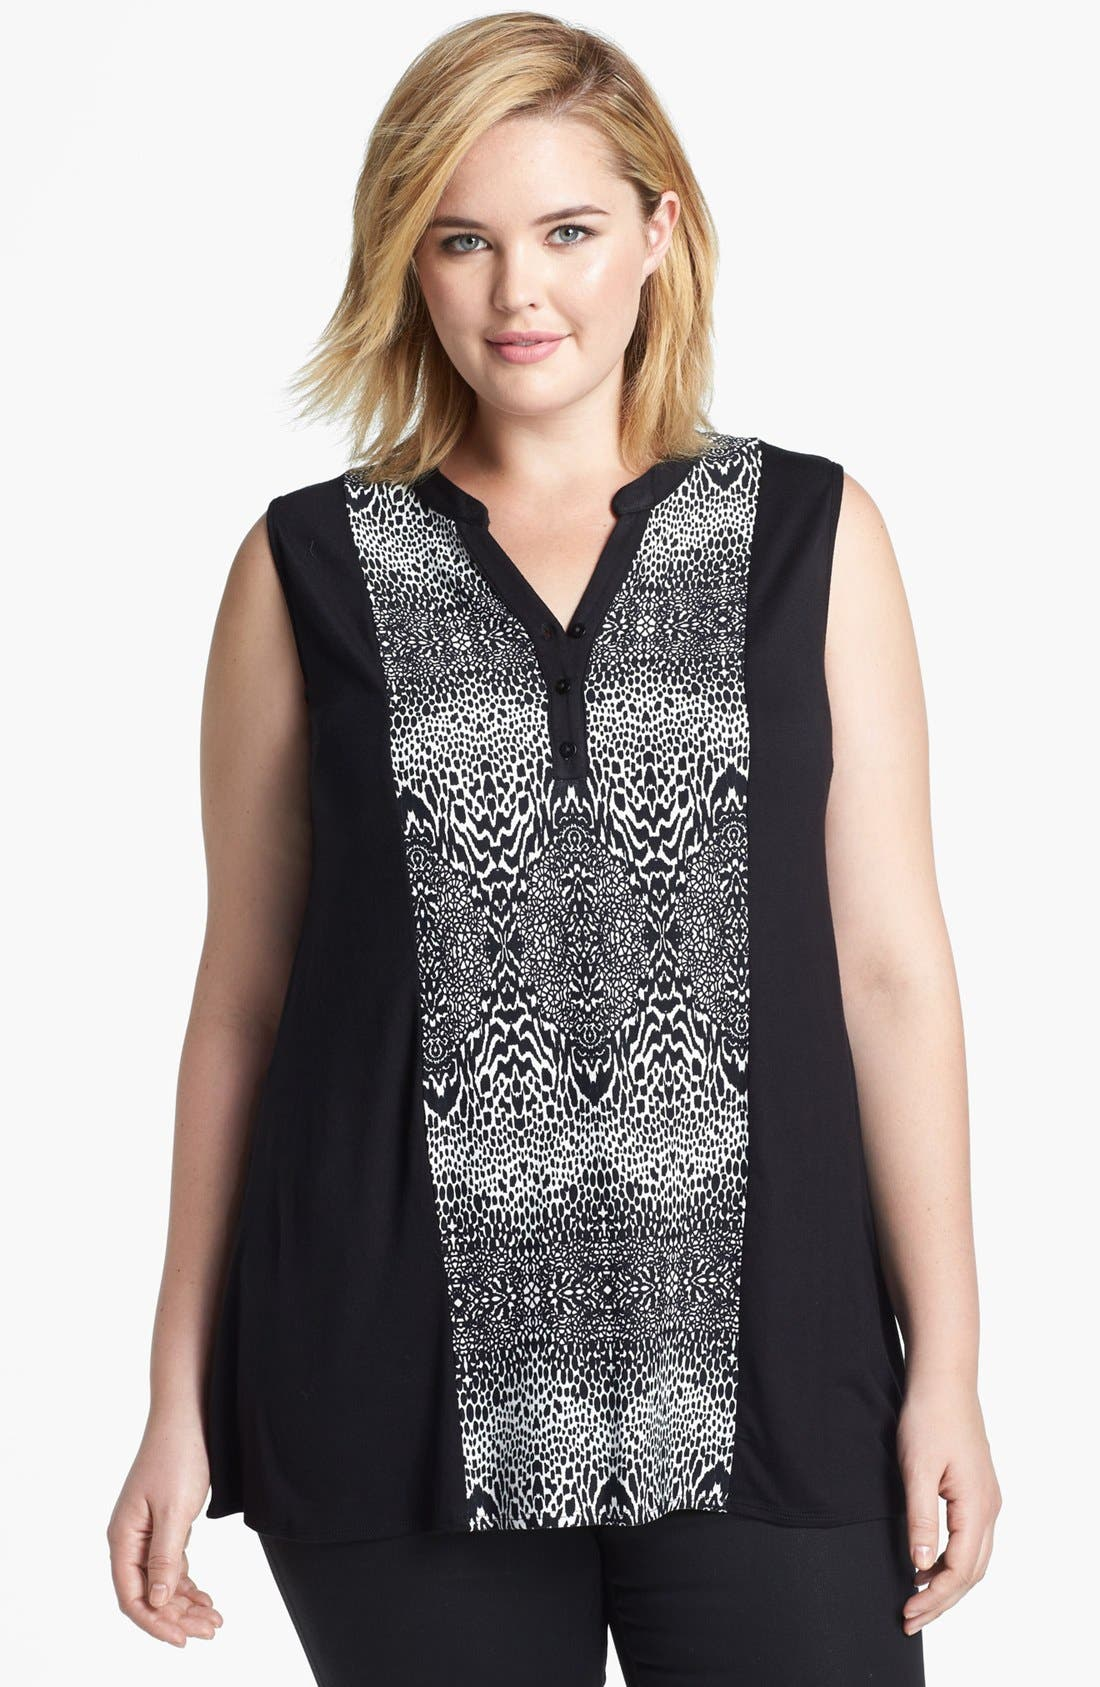 Alternate Image 1 Selected - Evans Print Panel Jersey Top (Plus Size)